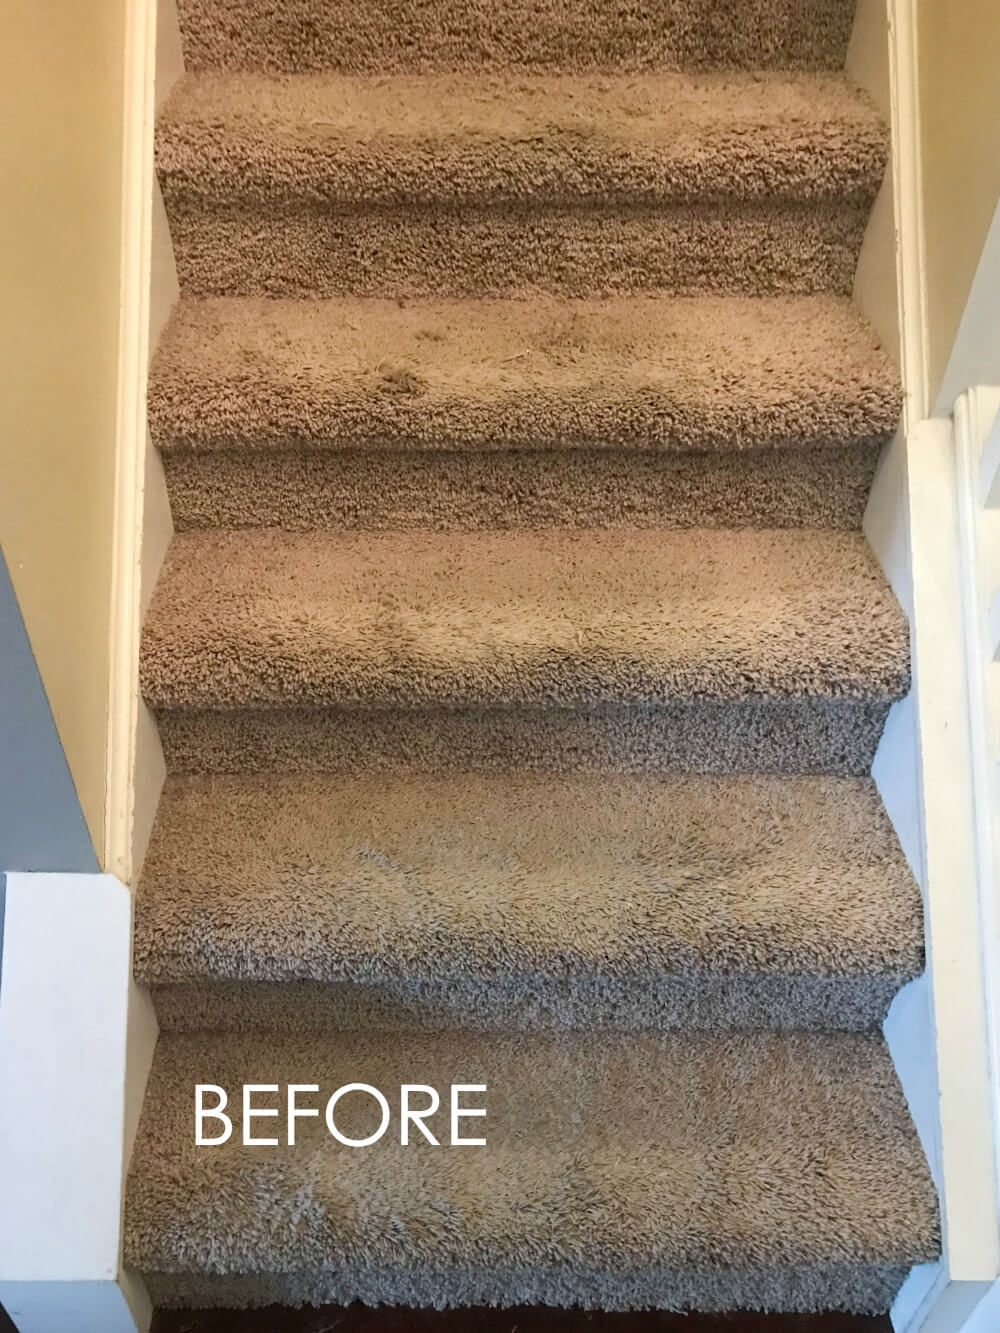 How To Replace Carpet With An Inexpensive Stair Runner For Around 100   Rugs For Stairs Cheap   Carpet   Elegant   Light Grey   Persian   White